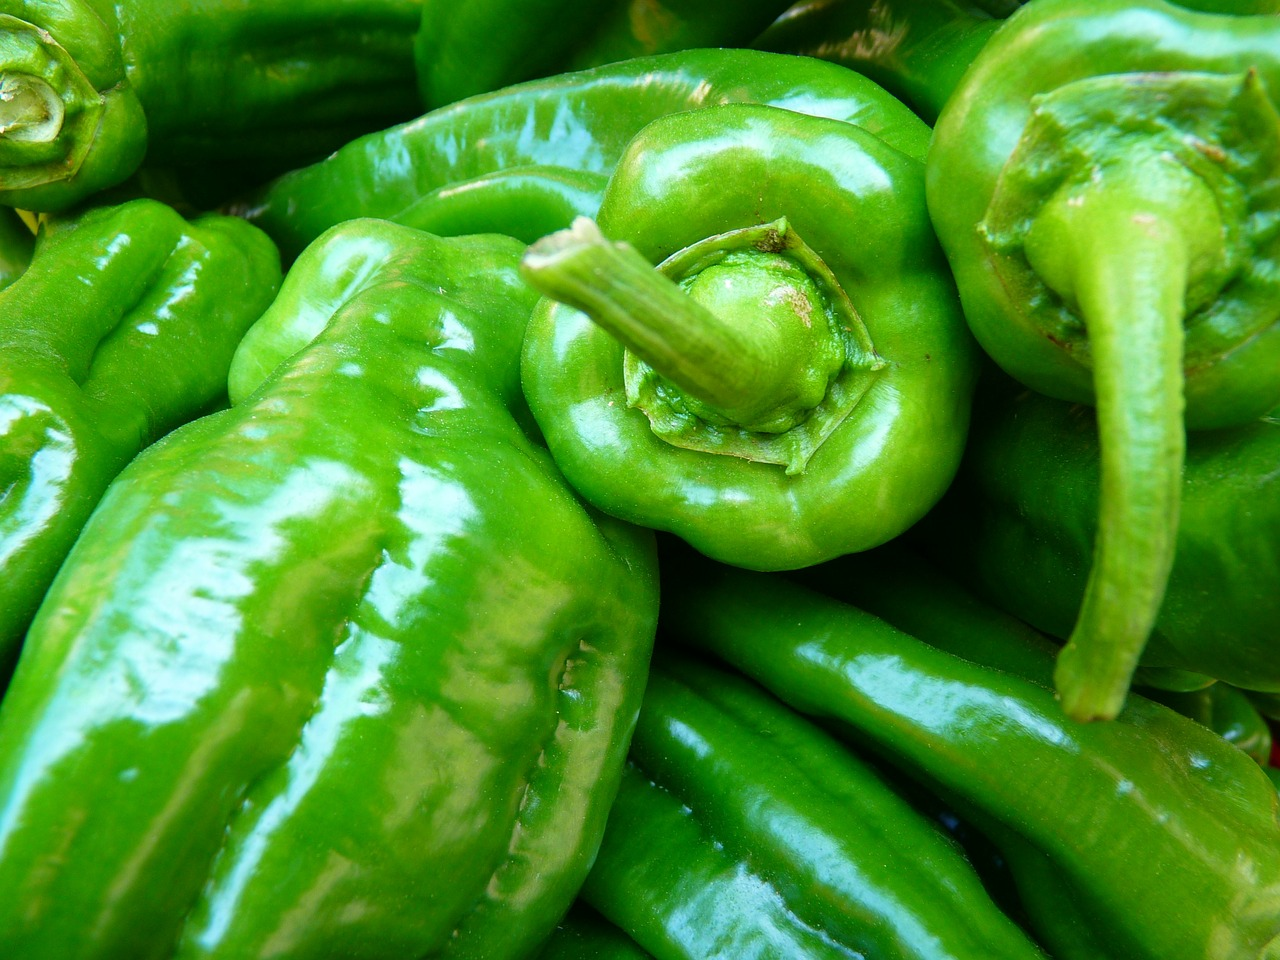 paprika vegetables green free photo